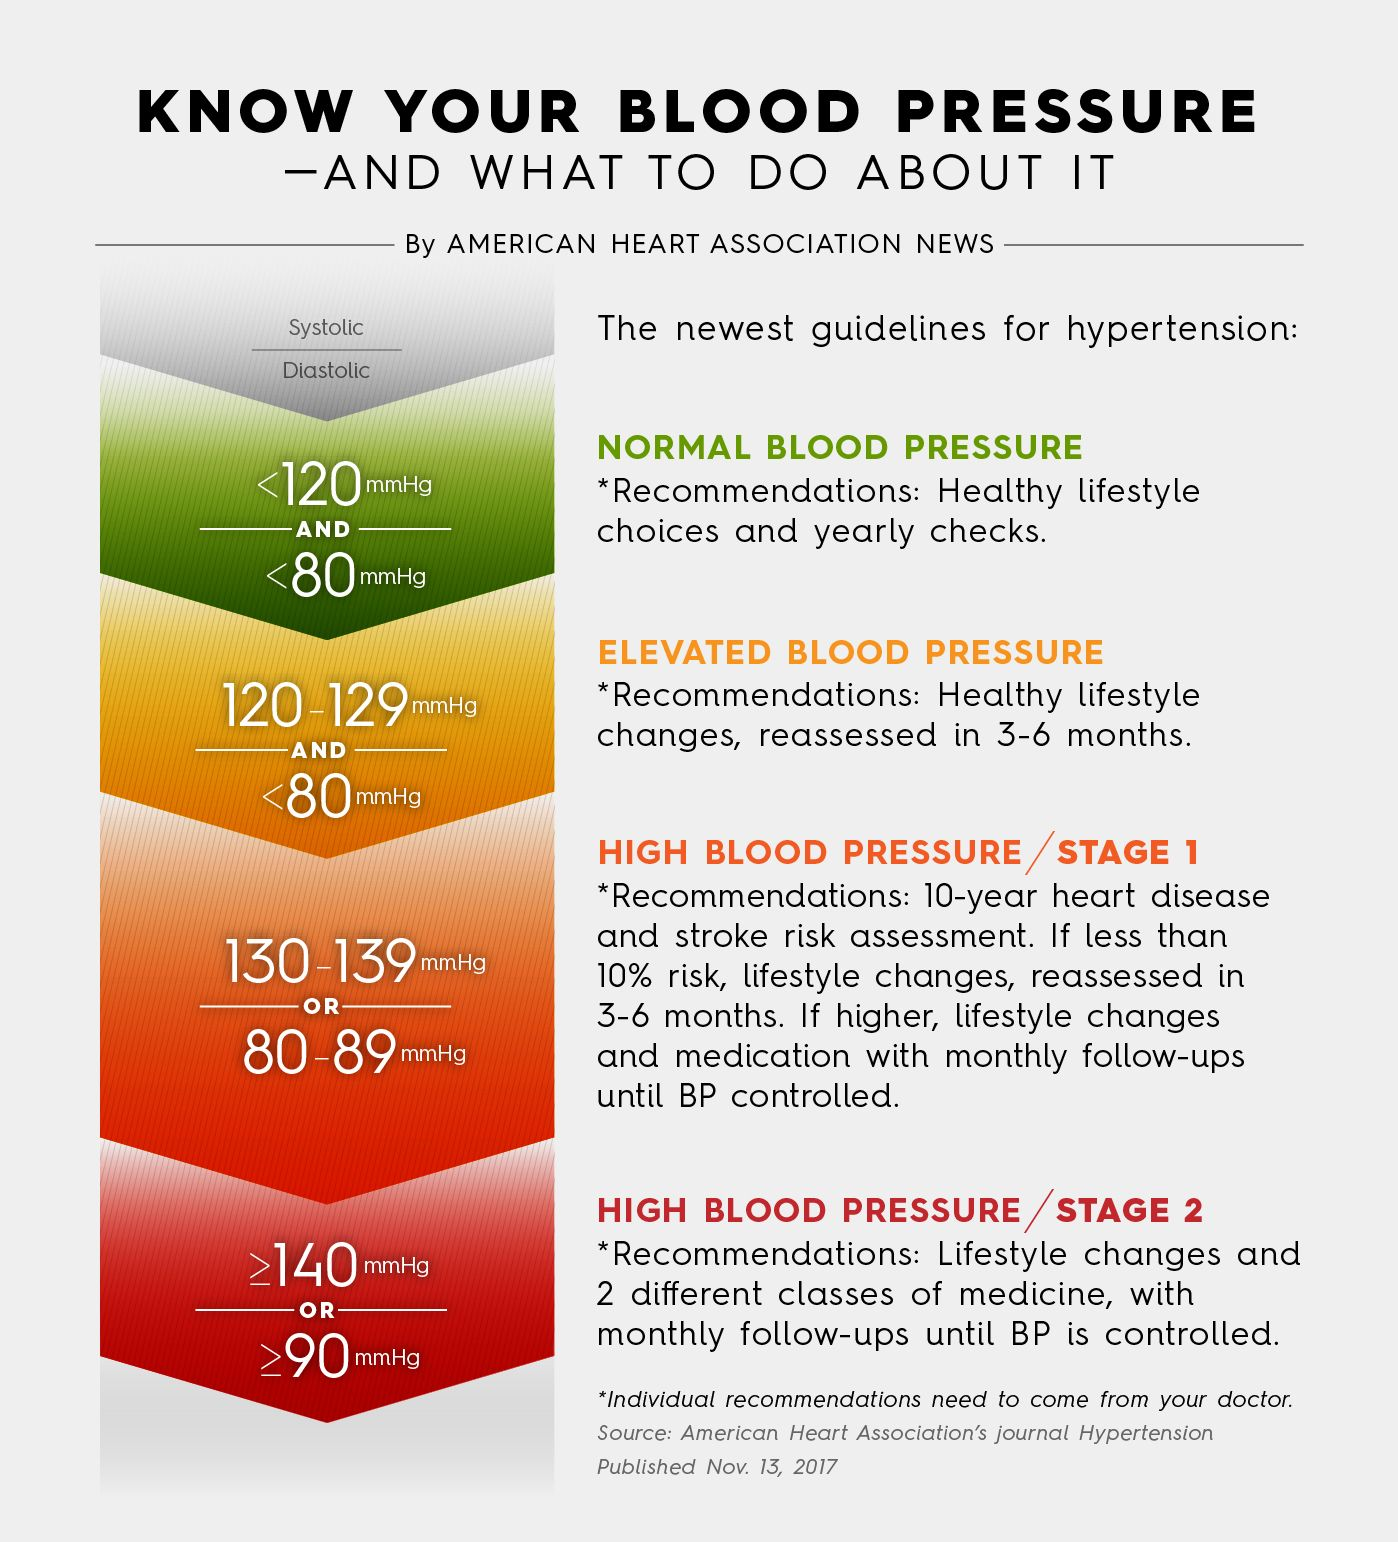 Heart Association lowers definition of high blood pressure